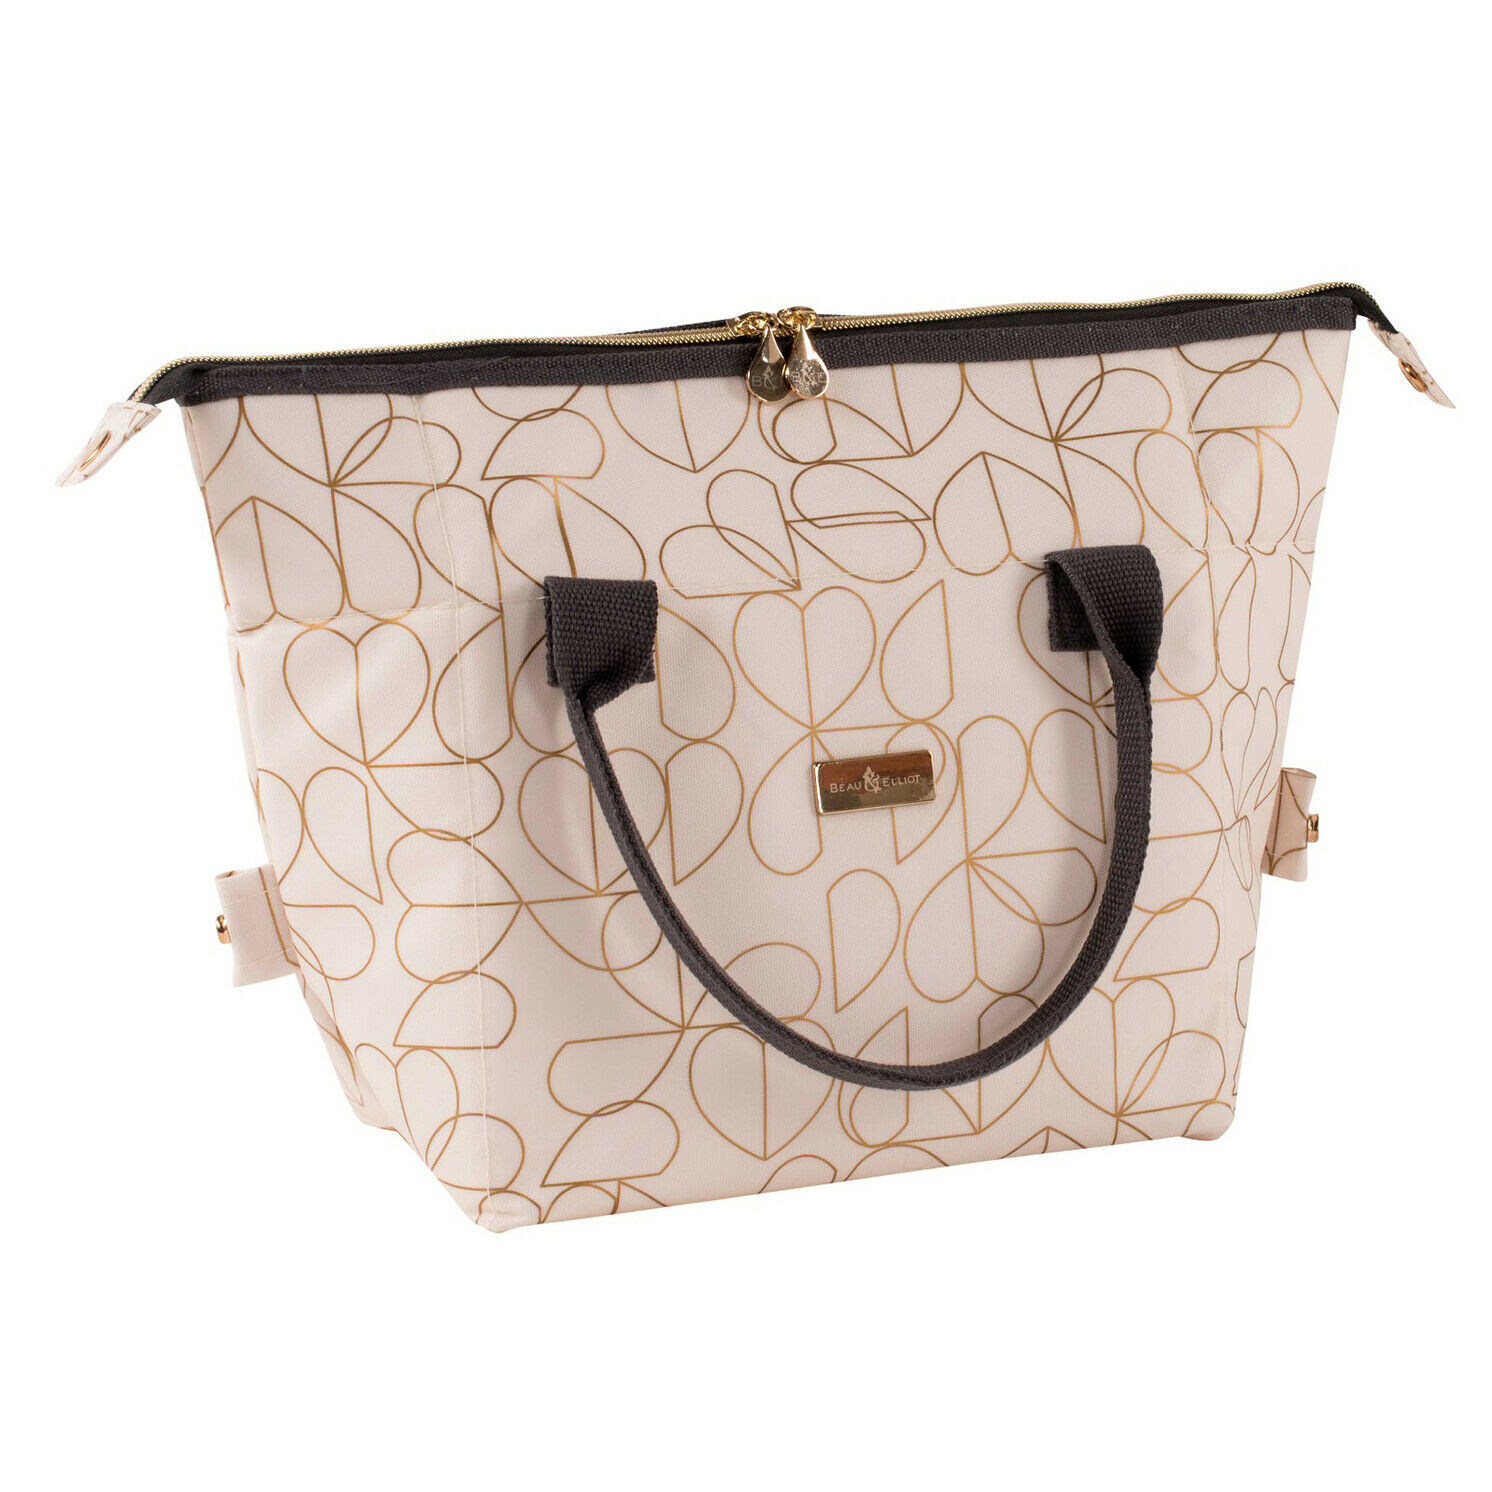 Beau & Elliot – Cream Oyster 2 in 1 Convertible Insulated Lunch Bag